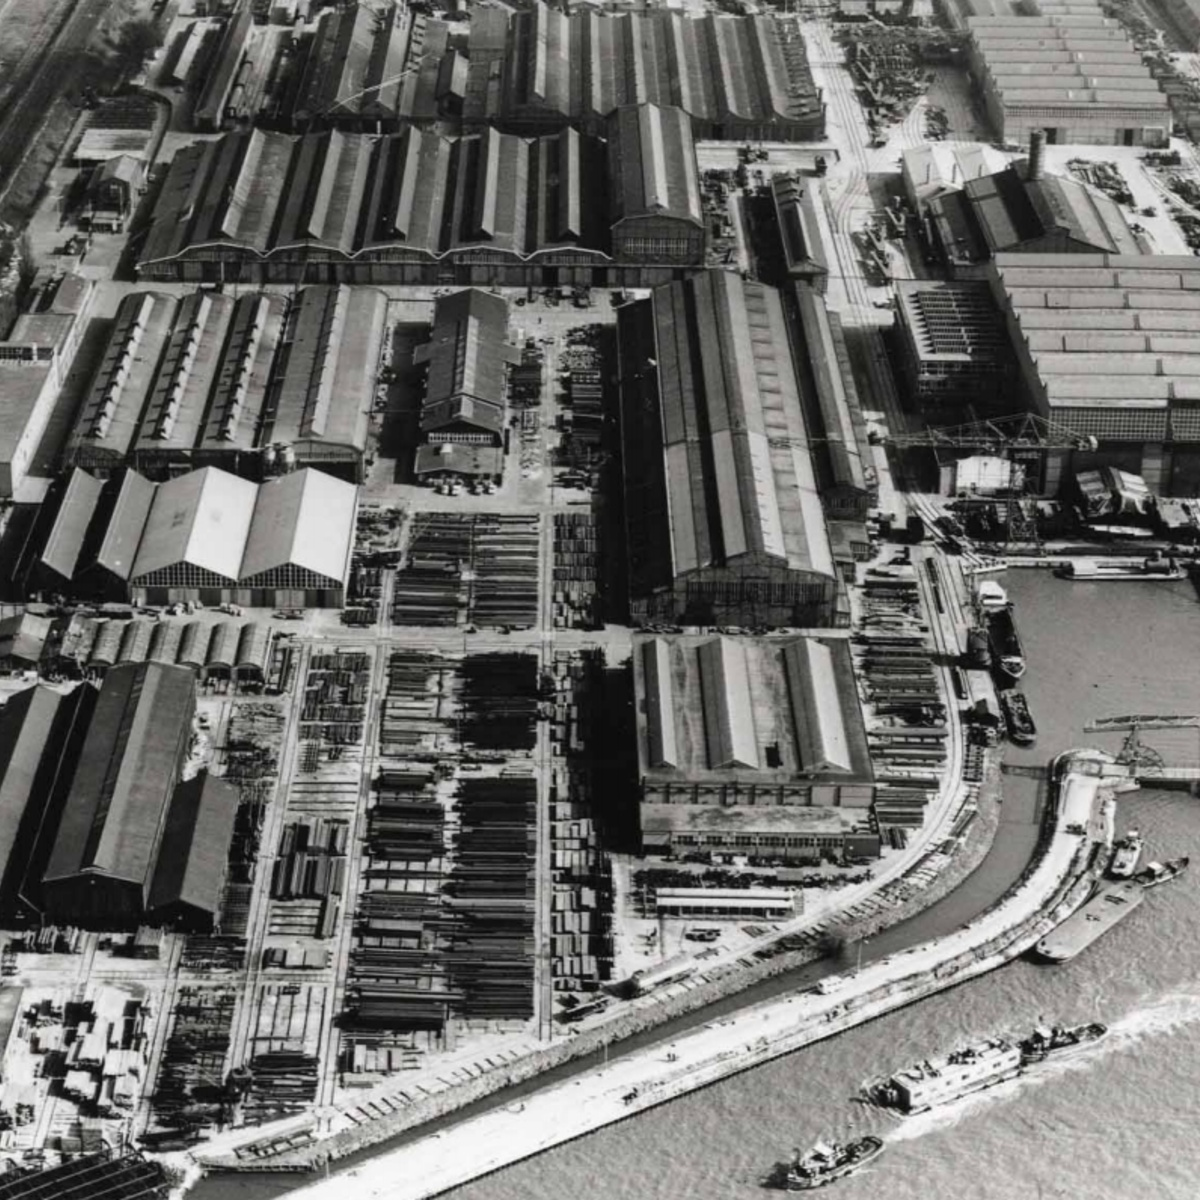 Werkspoor_factory-historical_photo-01.jpg